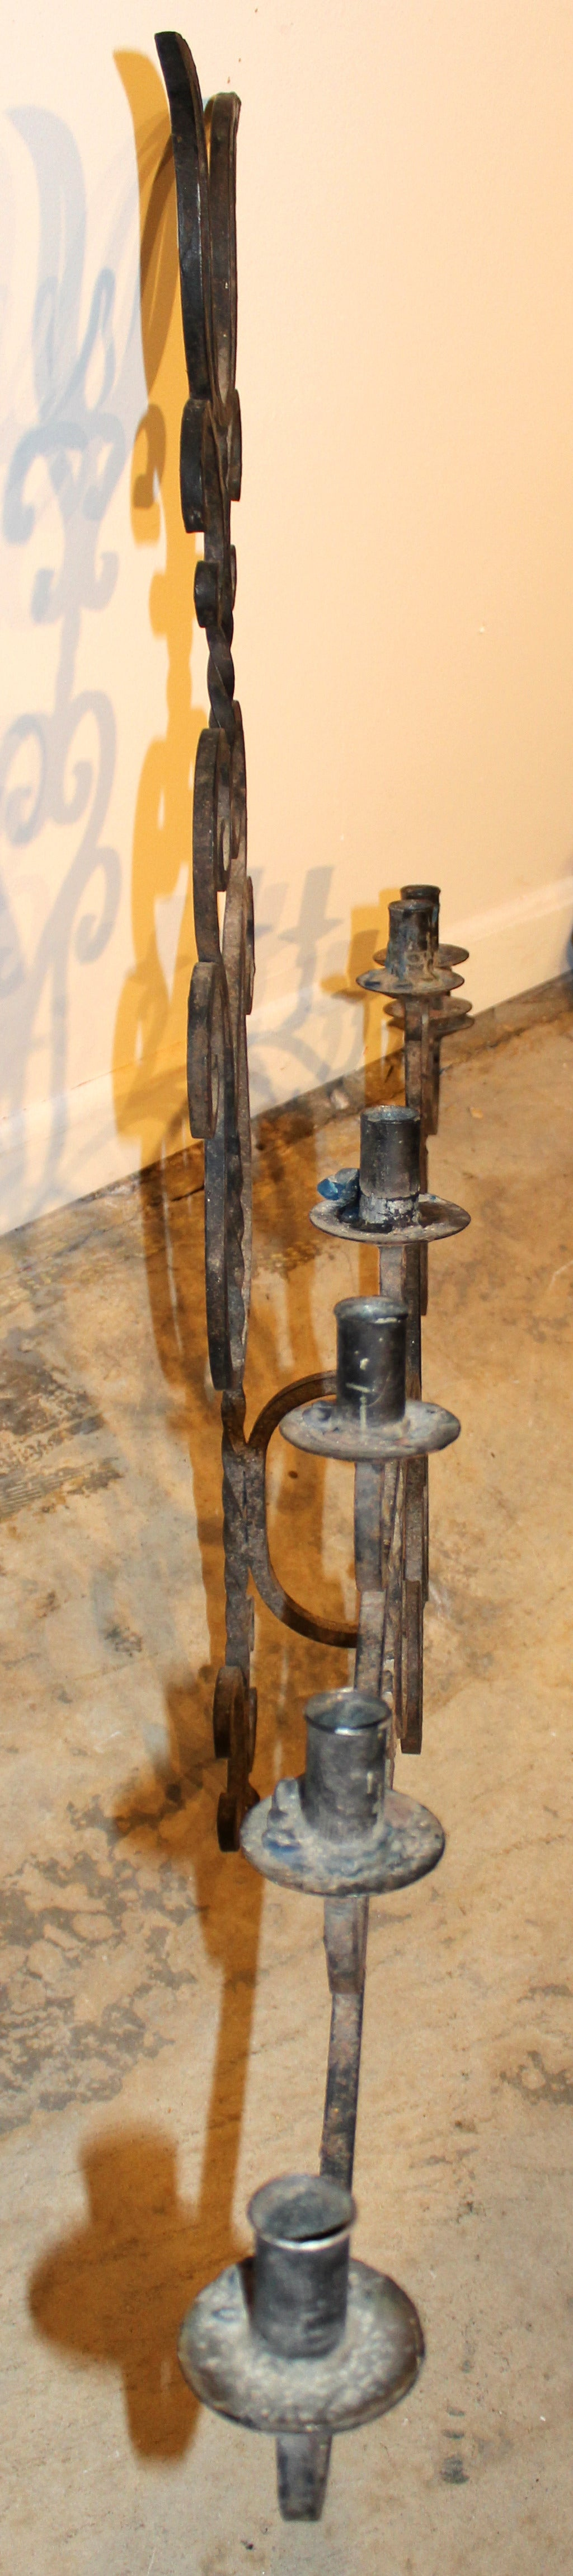 Wrought Iron Eight-Light Wall Sconce at 1stdibs